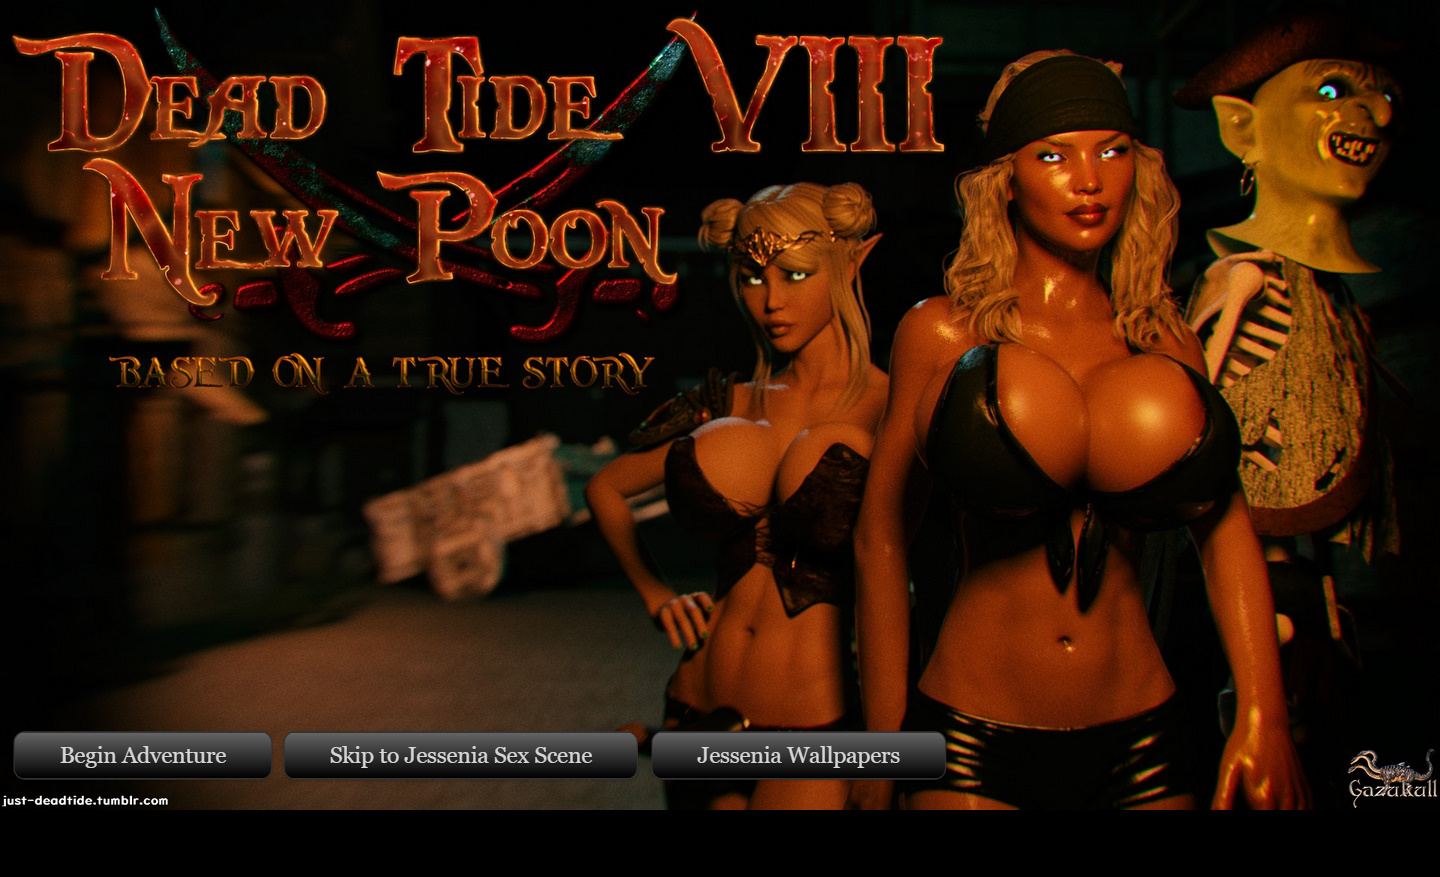 Dead Tide VIII - New Poon by Gazukull